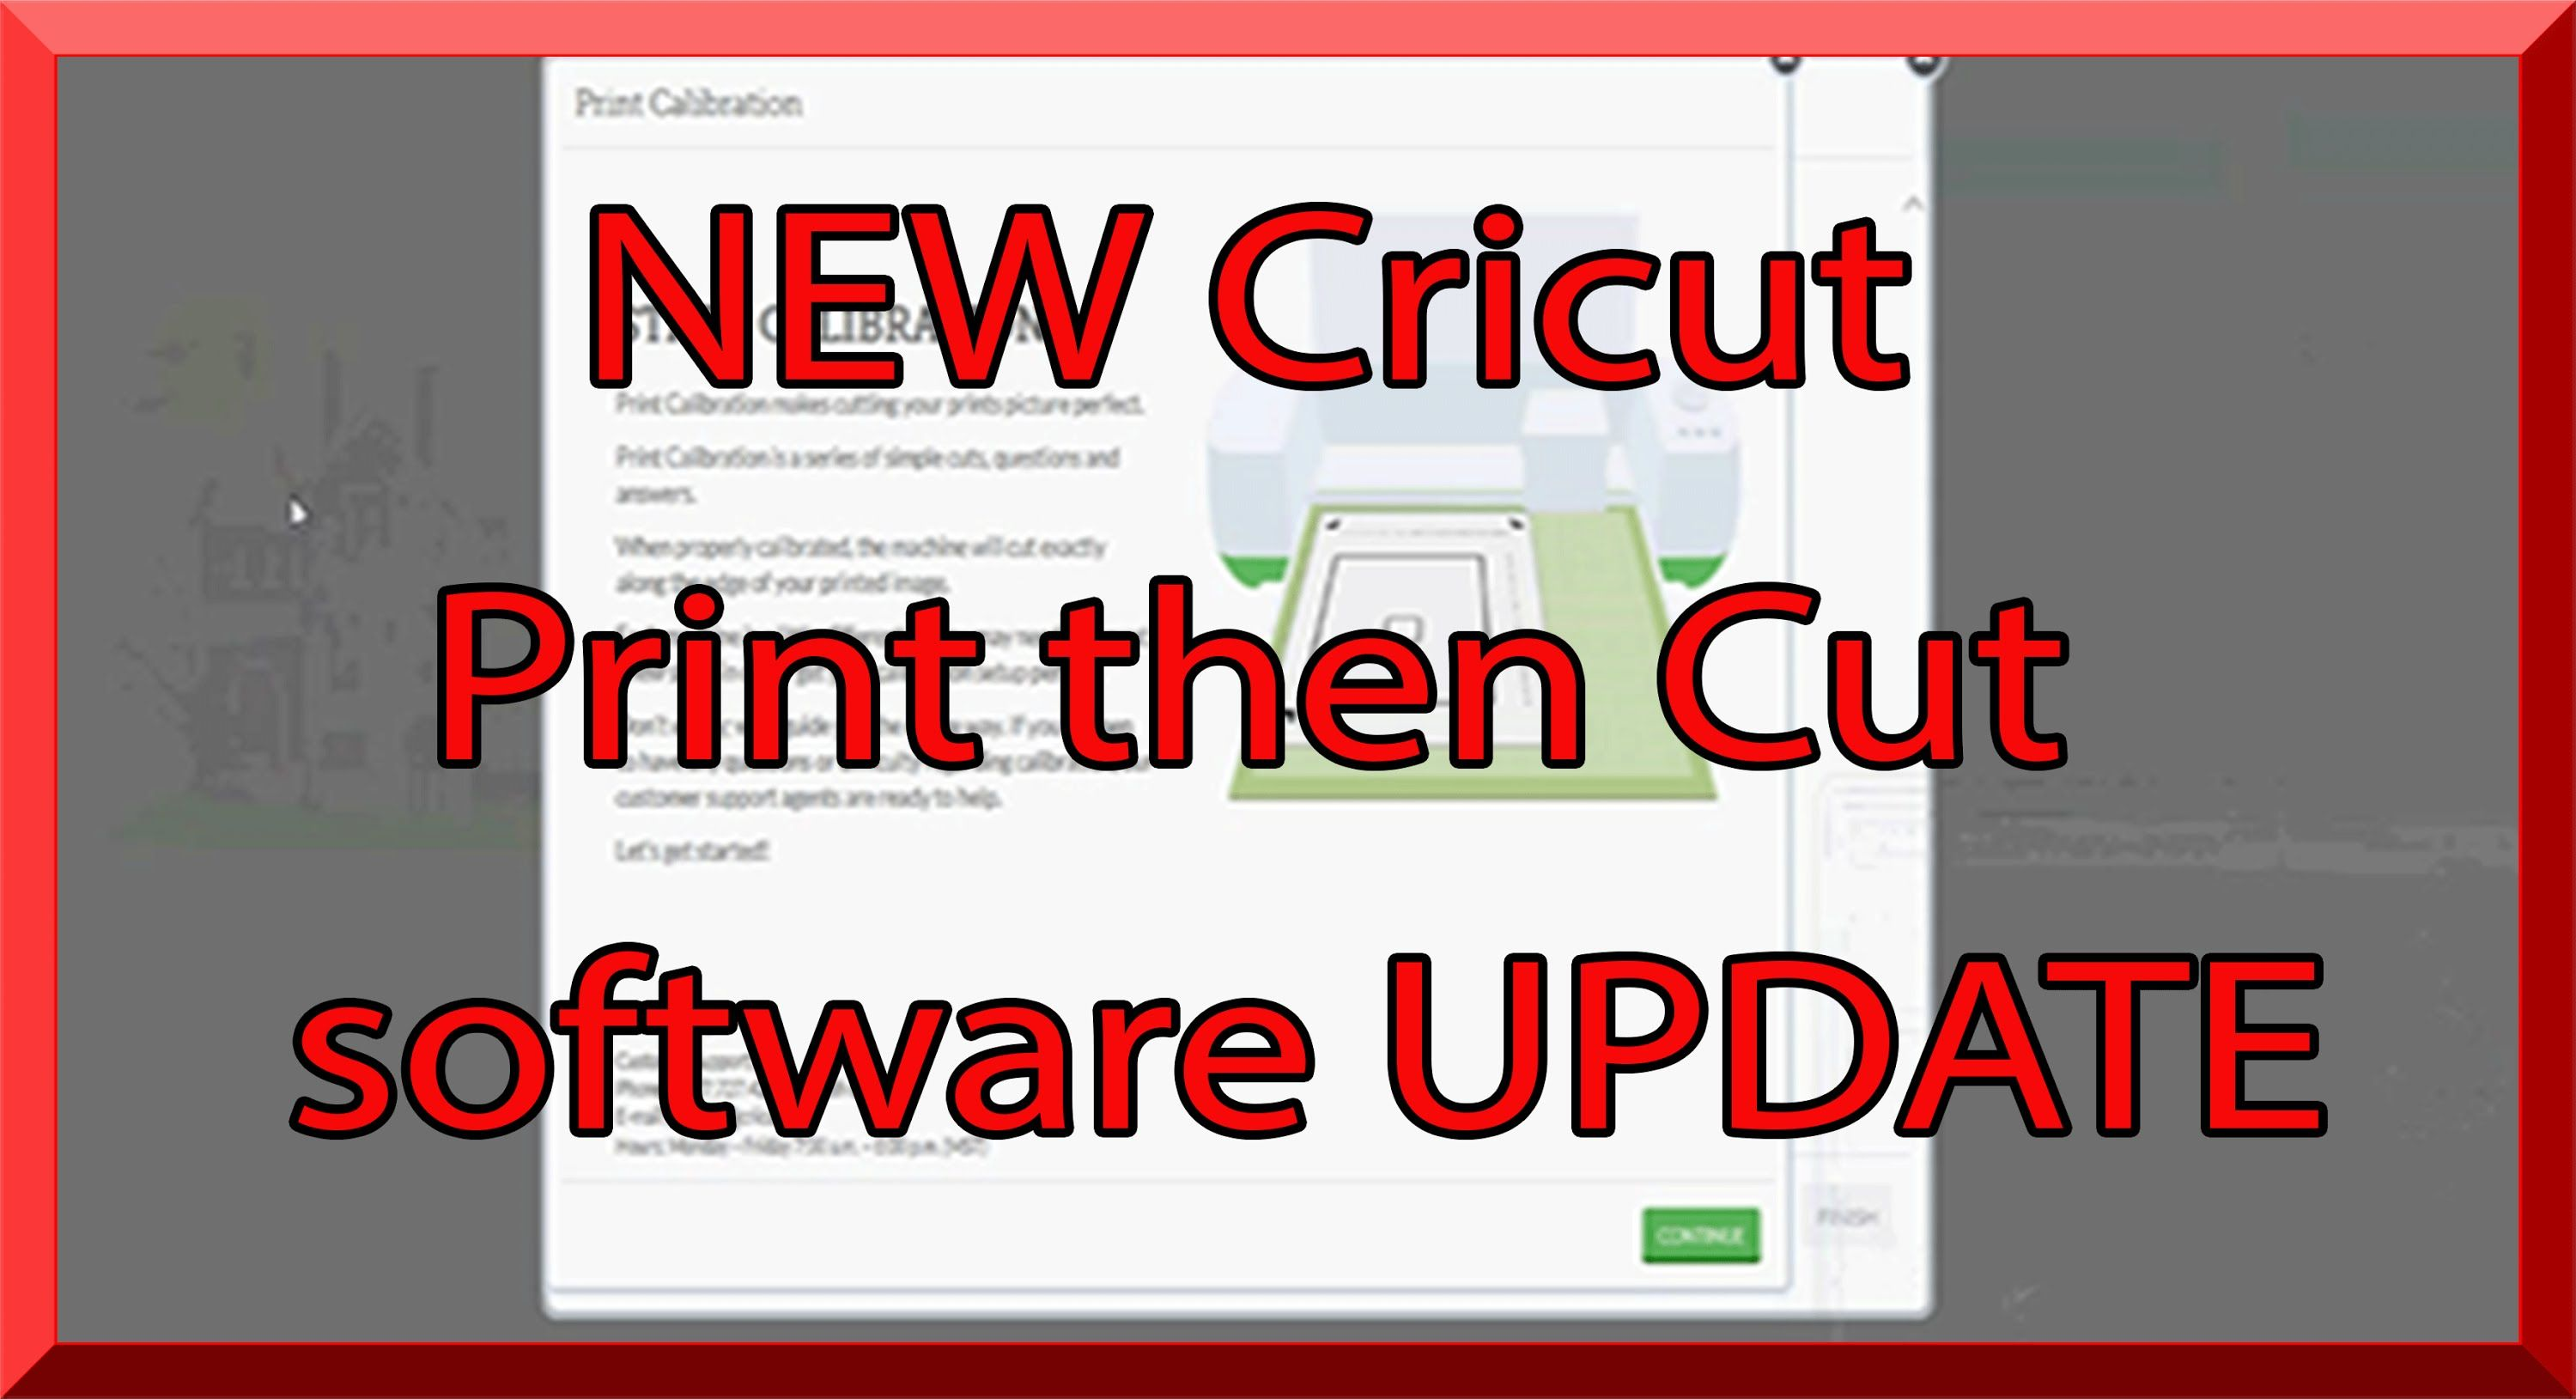 NEW Cricut Design Space Print then Cut software update | cricut